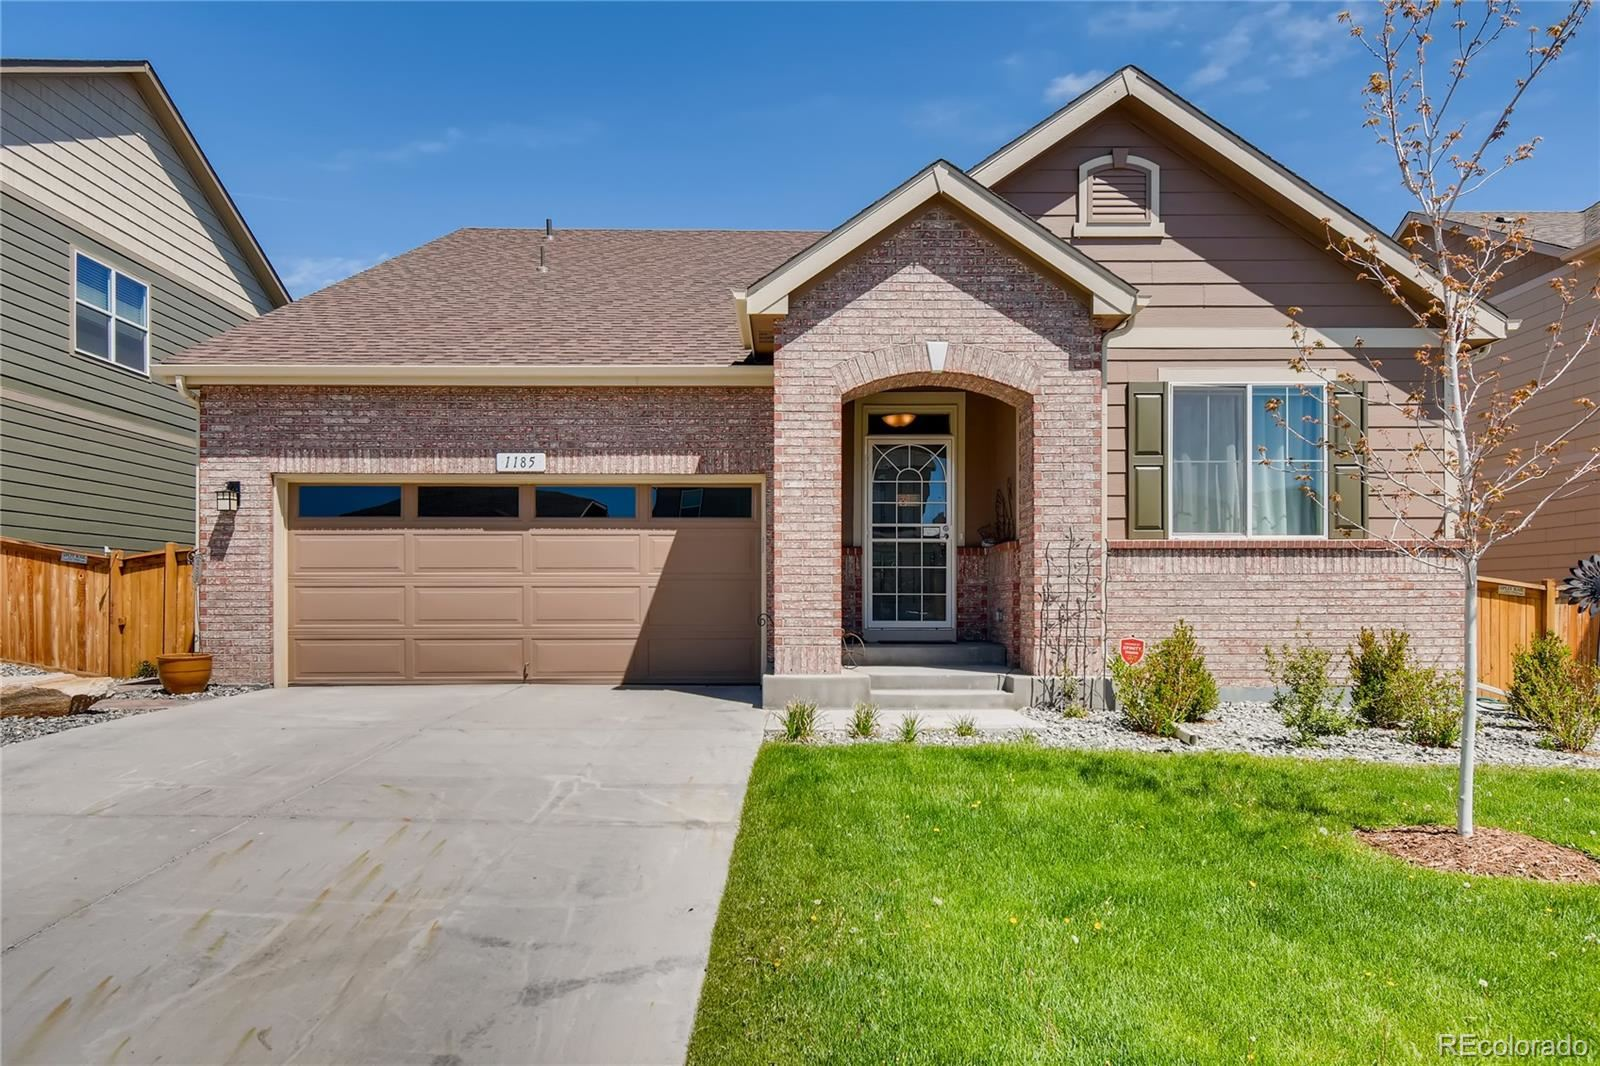 1185 W 170th Place, Broomfield, CO 80023 - #: 3930412